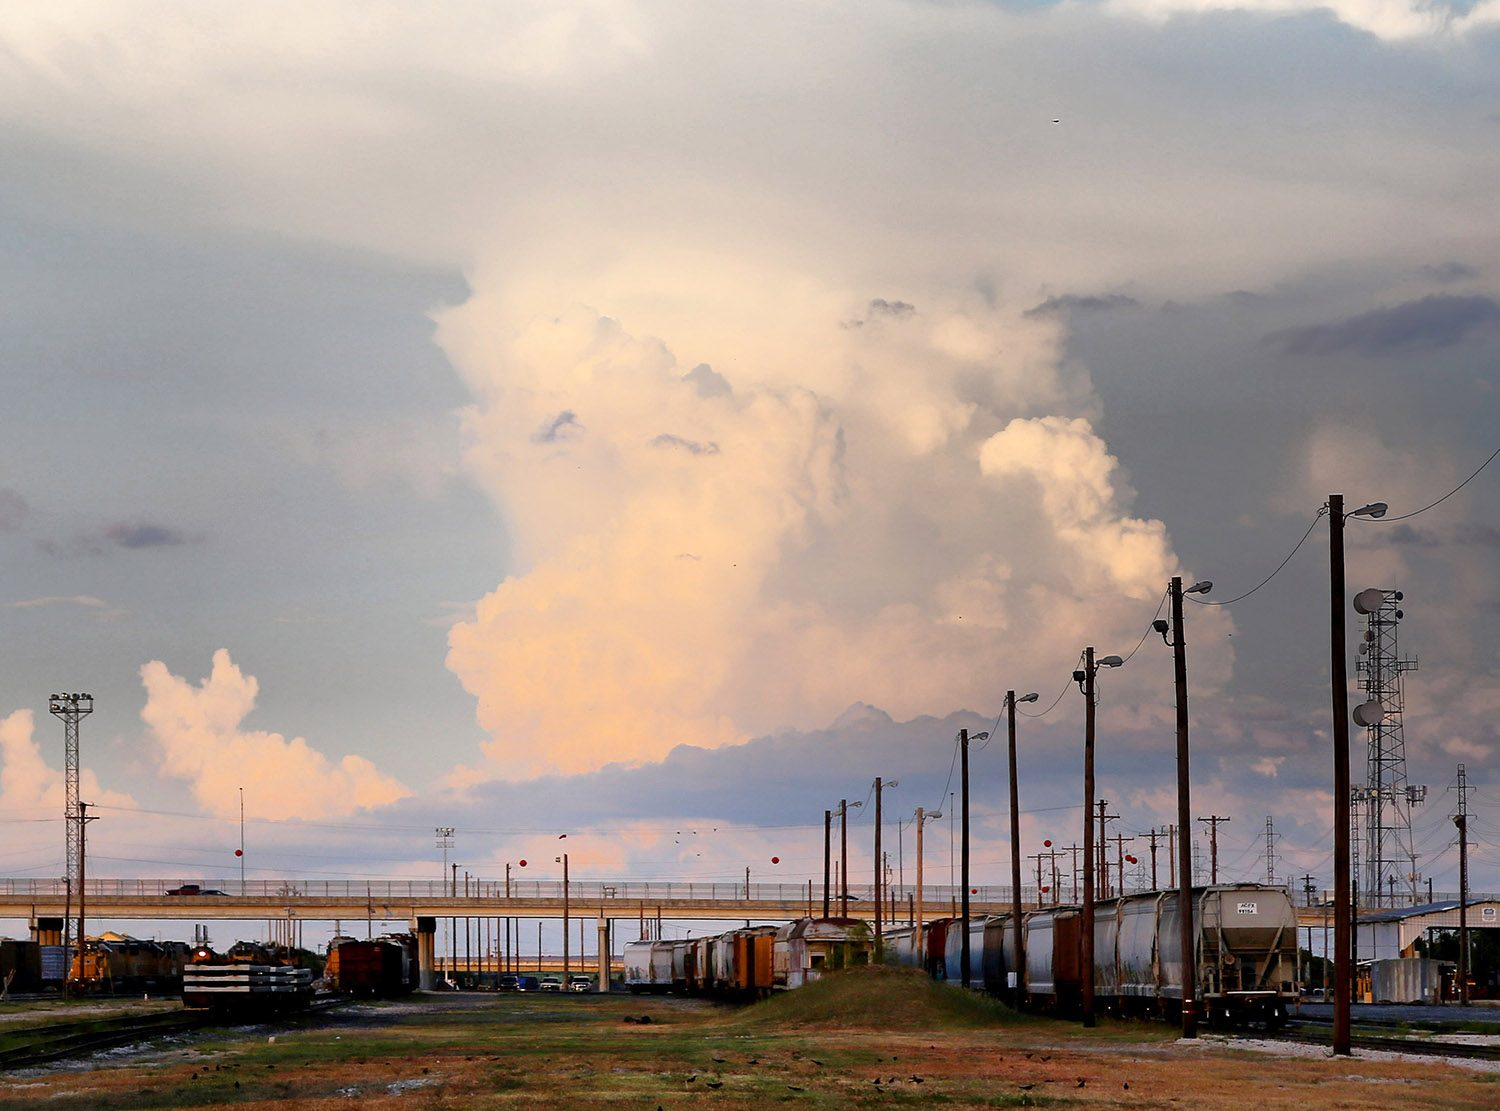 A large cloud hovers over the Union Pacific East Year as seen from North Pine Street. <b><em>Photo by Ben Olivo | Heron</em></b>